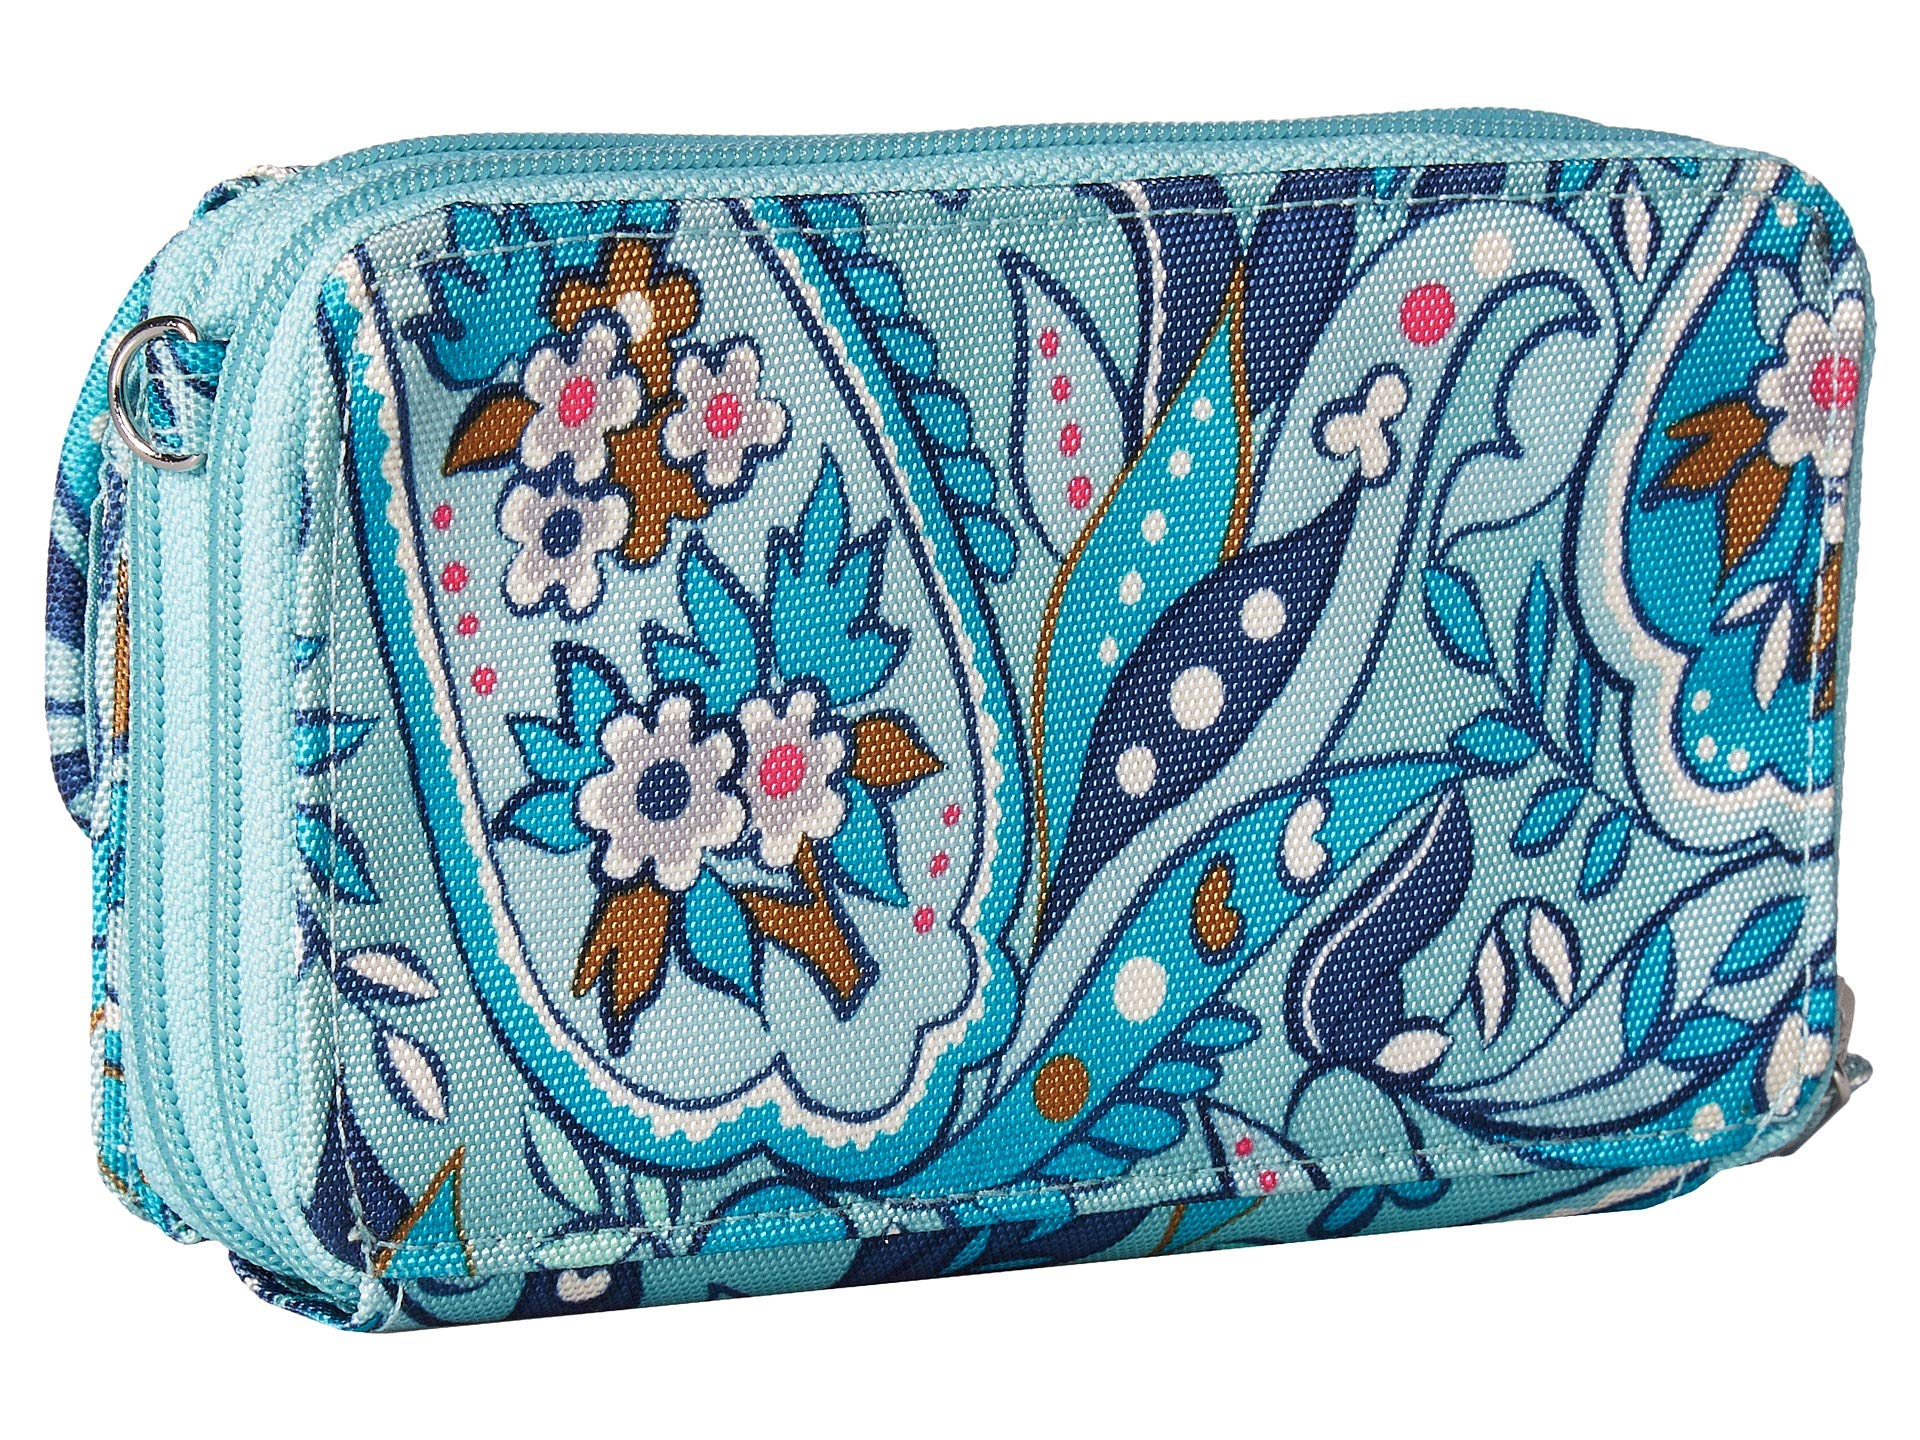 Rfid Lighten Paisley Crossbody in one Daisy Up Vera All Bradley qvtSwt